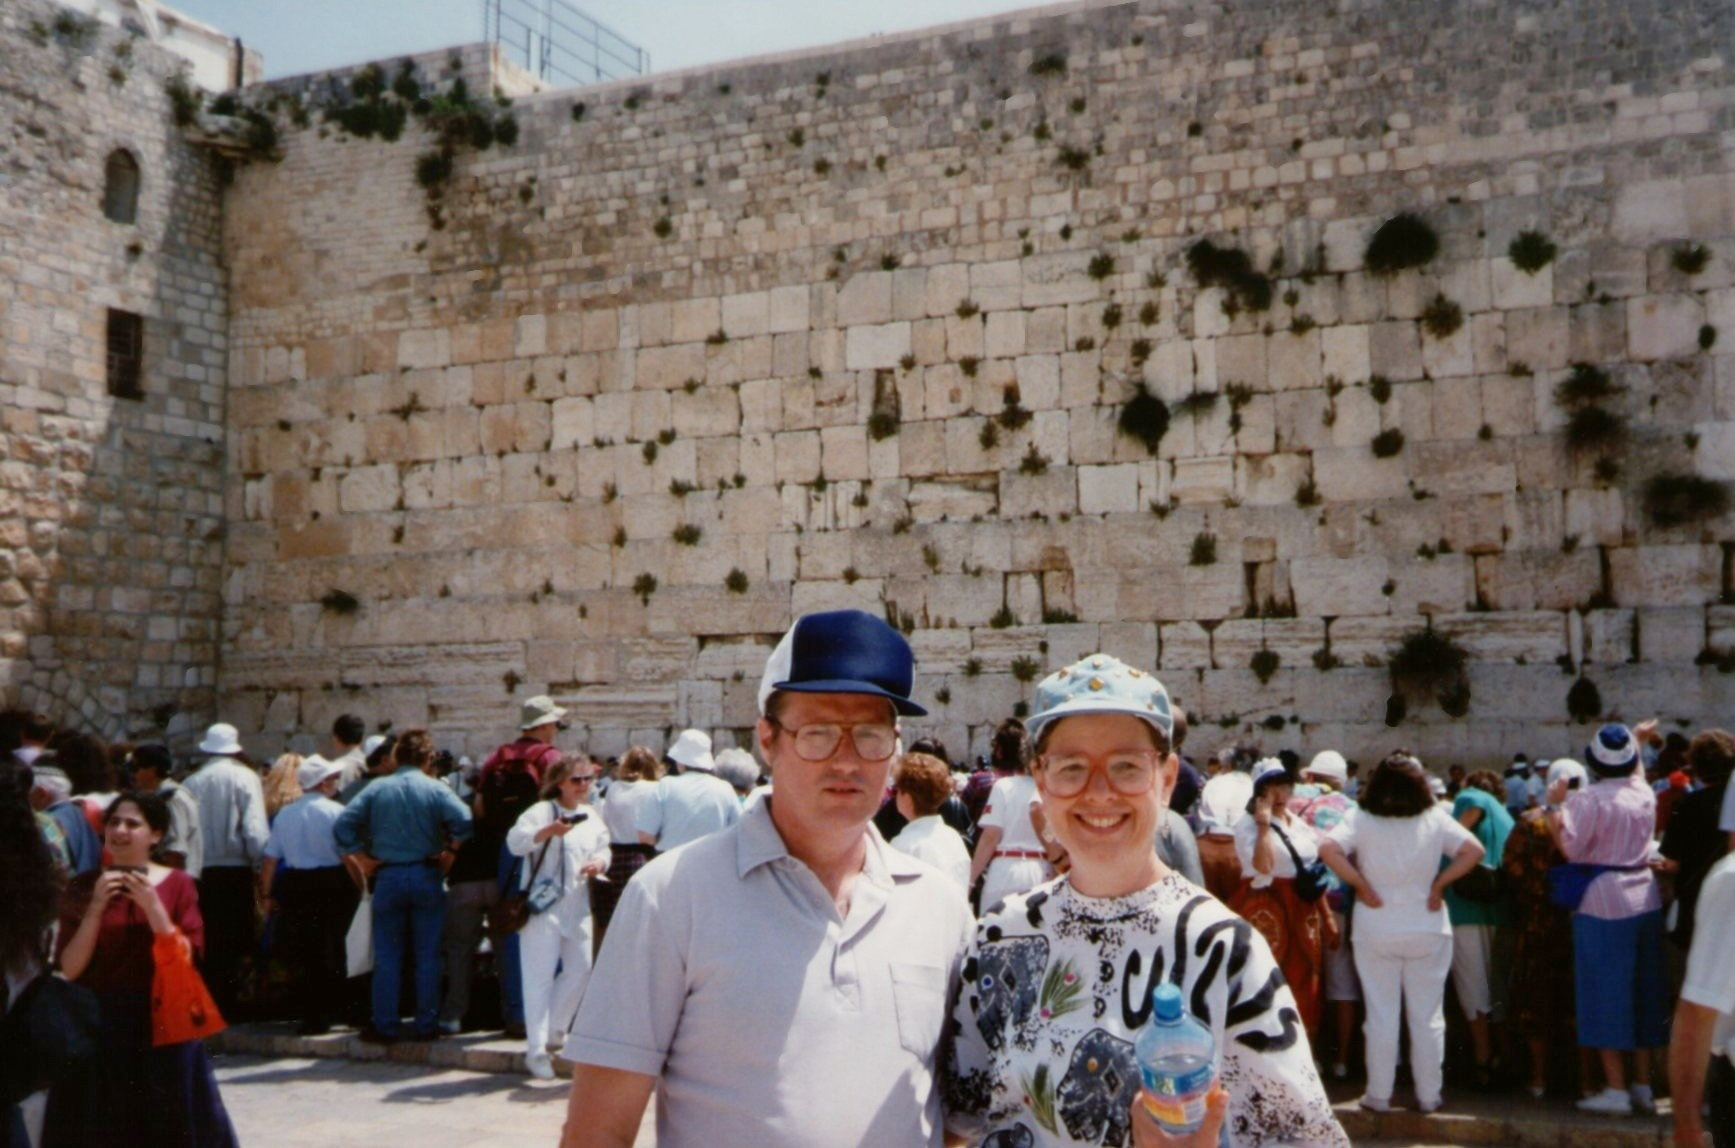 the author at the Wailing Wall